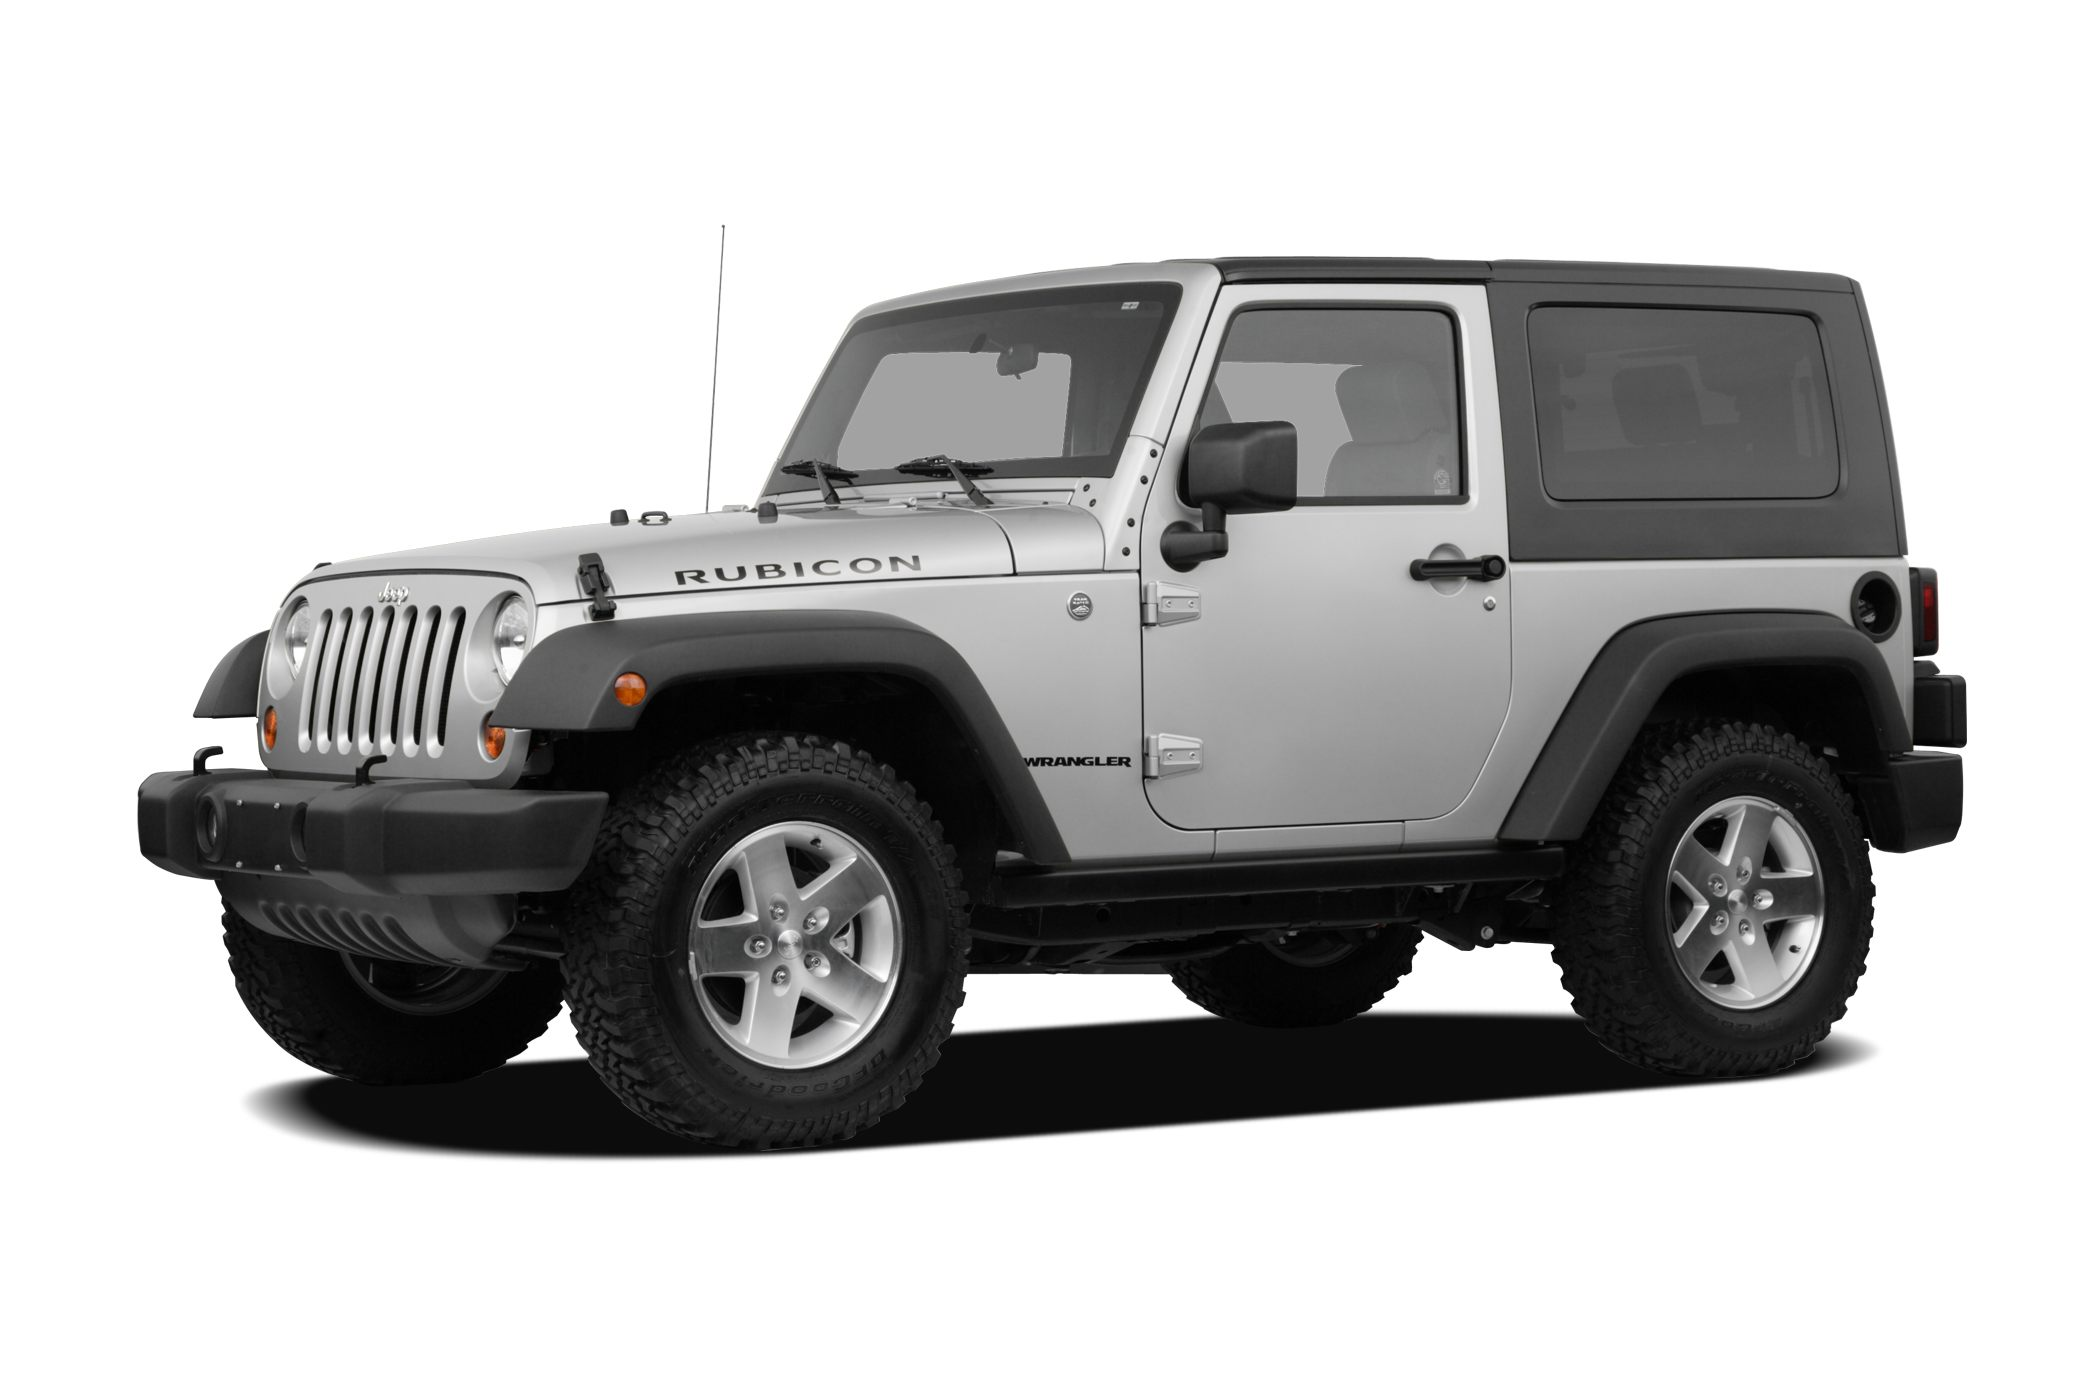 2007 Jeep Wrangler X Clean Carfax - 6 Spd MT Jeep Under 15k 4WD Easy Folding SoftTop Integrate